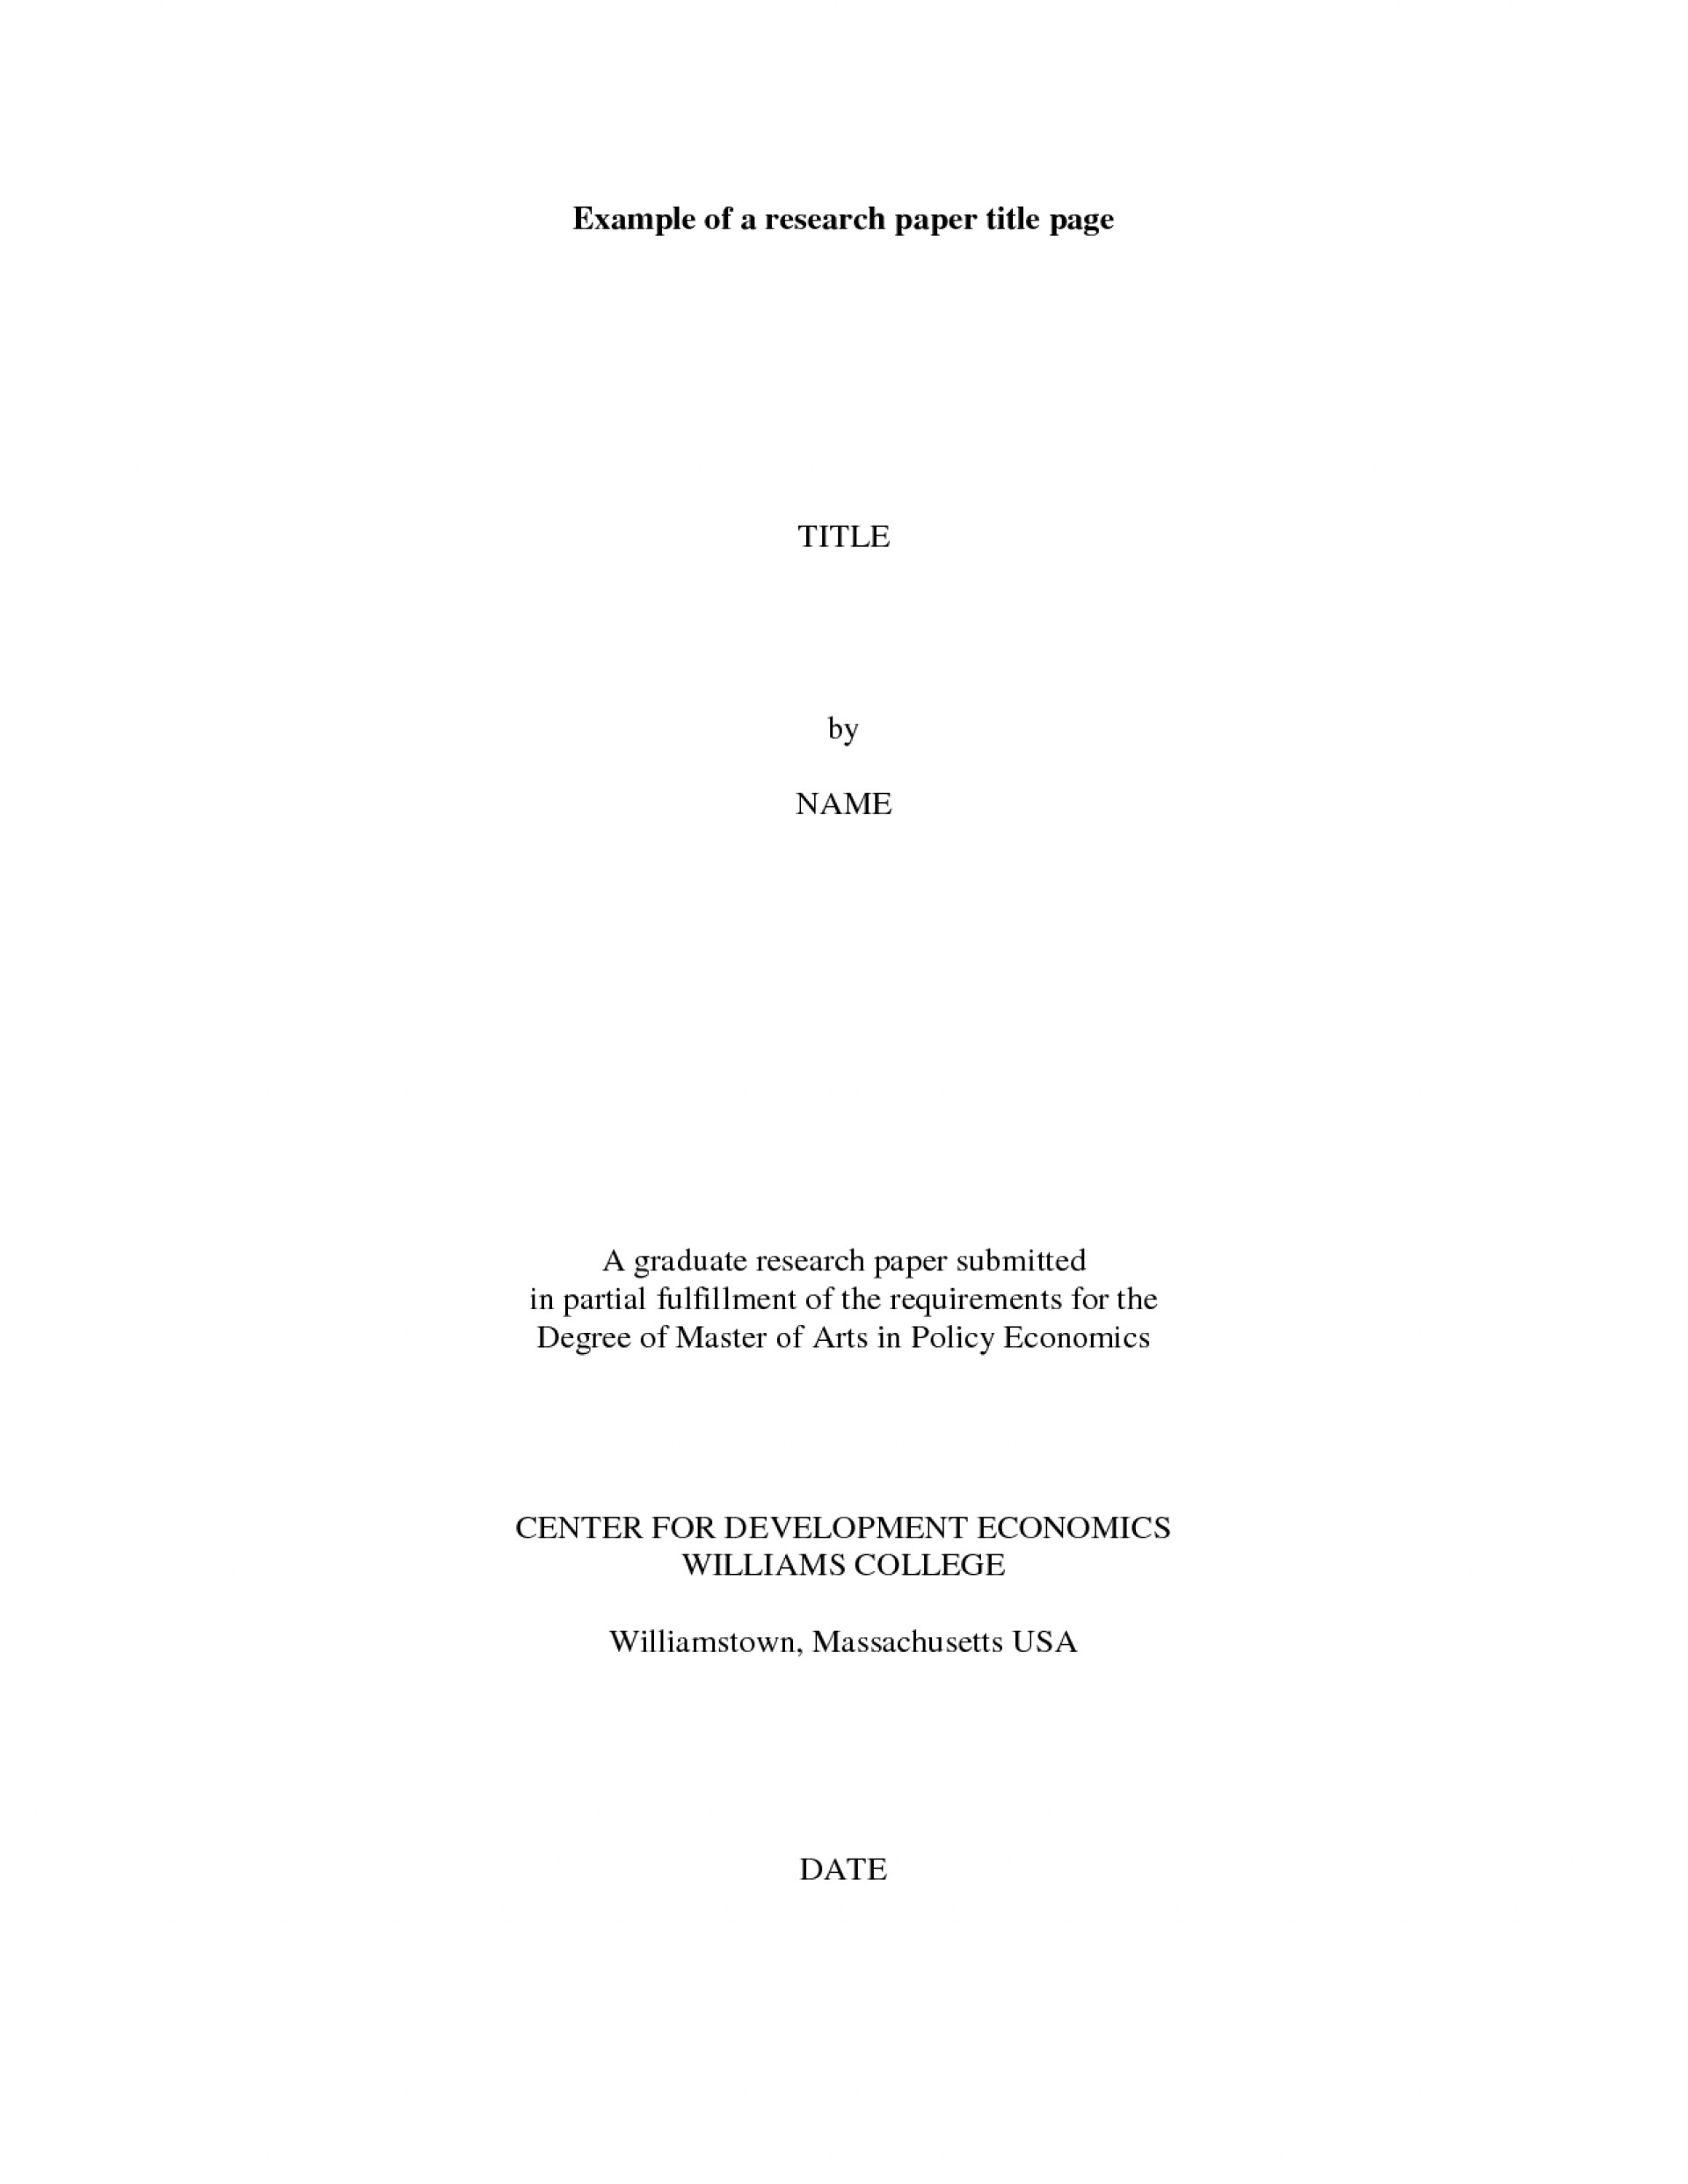 003 Cover Page Research Paper Template Sample 319781 Breathtaking Mla 1920